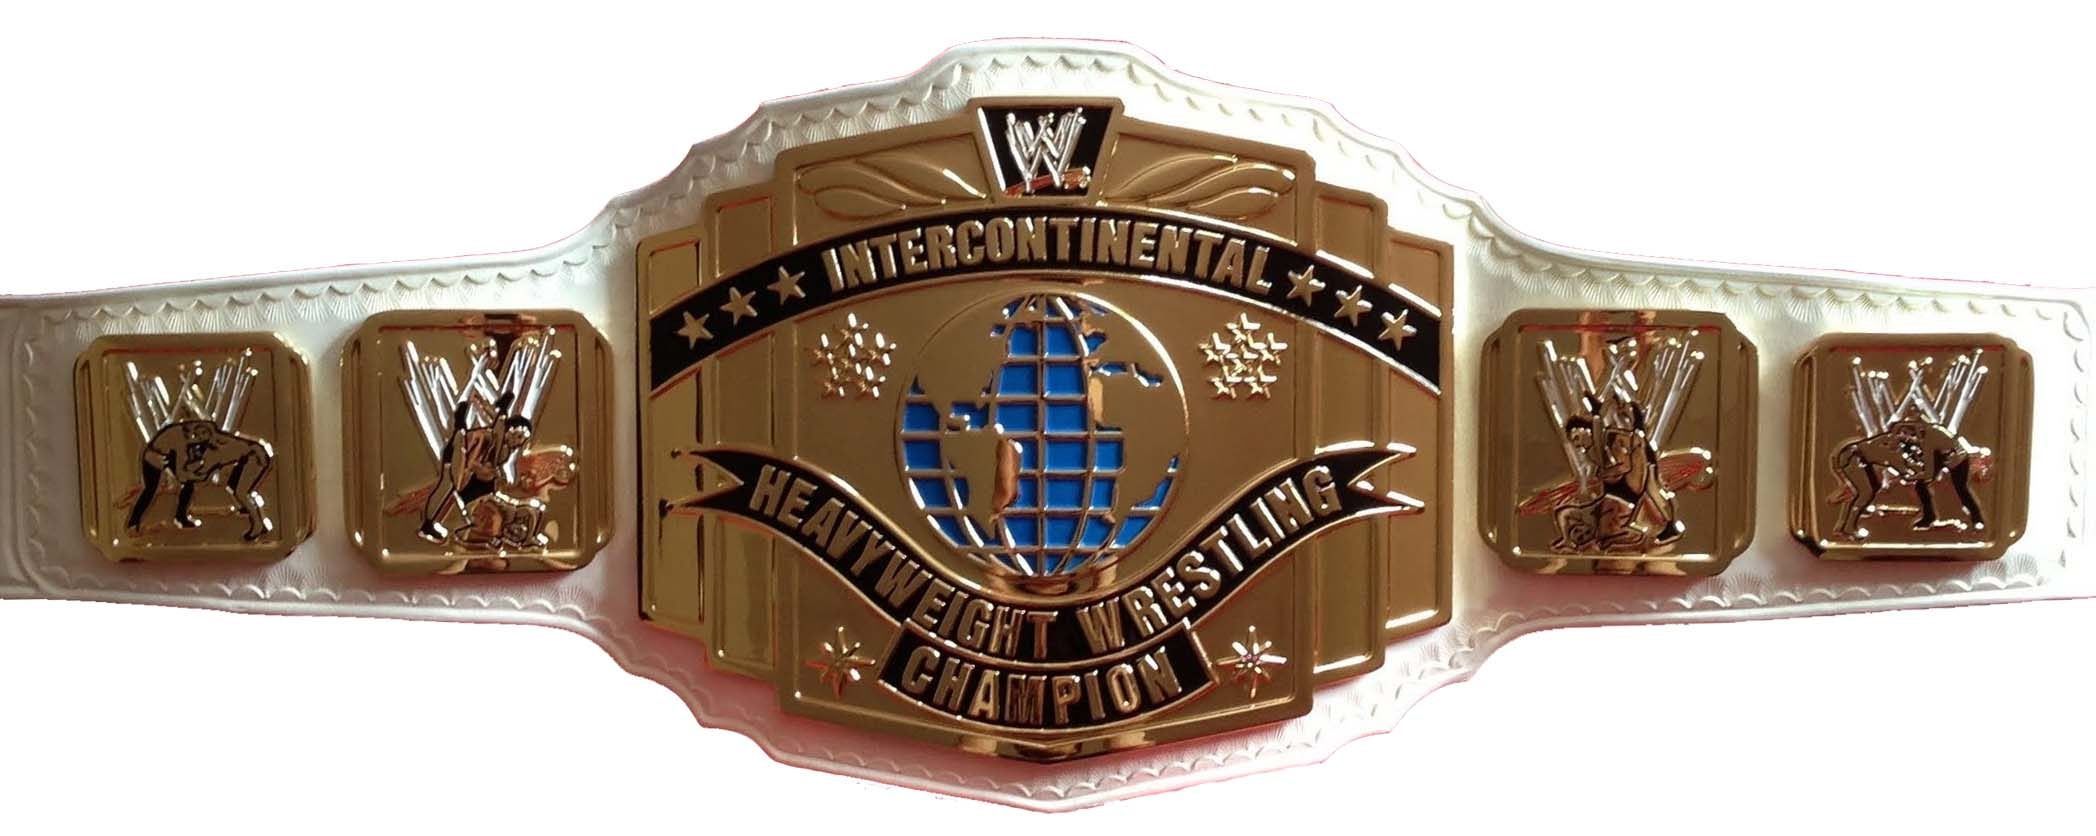 Wwe Images 2014 in April 2014 The Wwe Held a